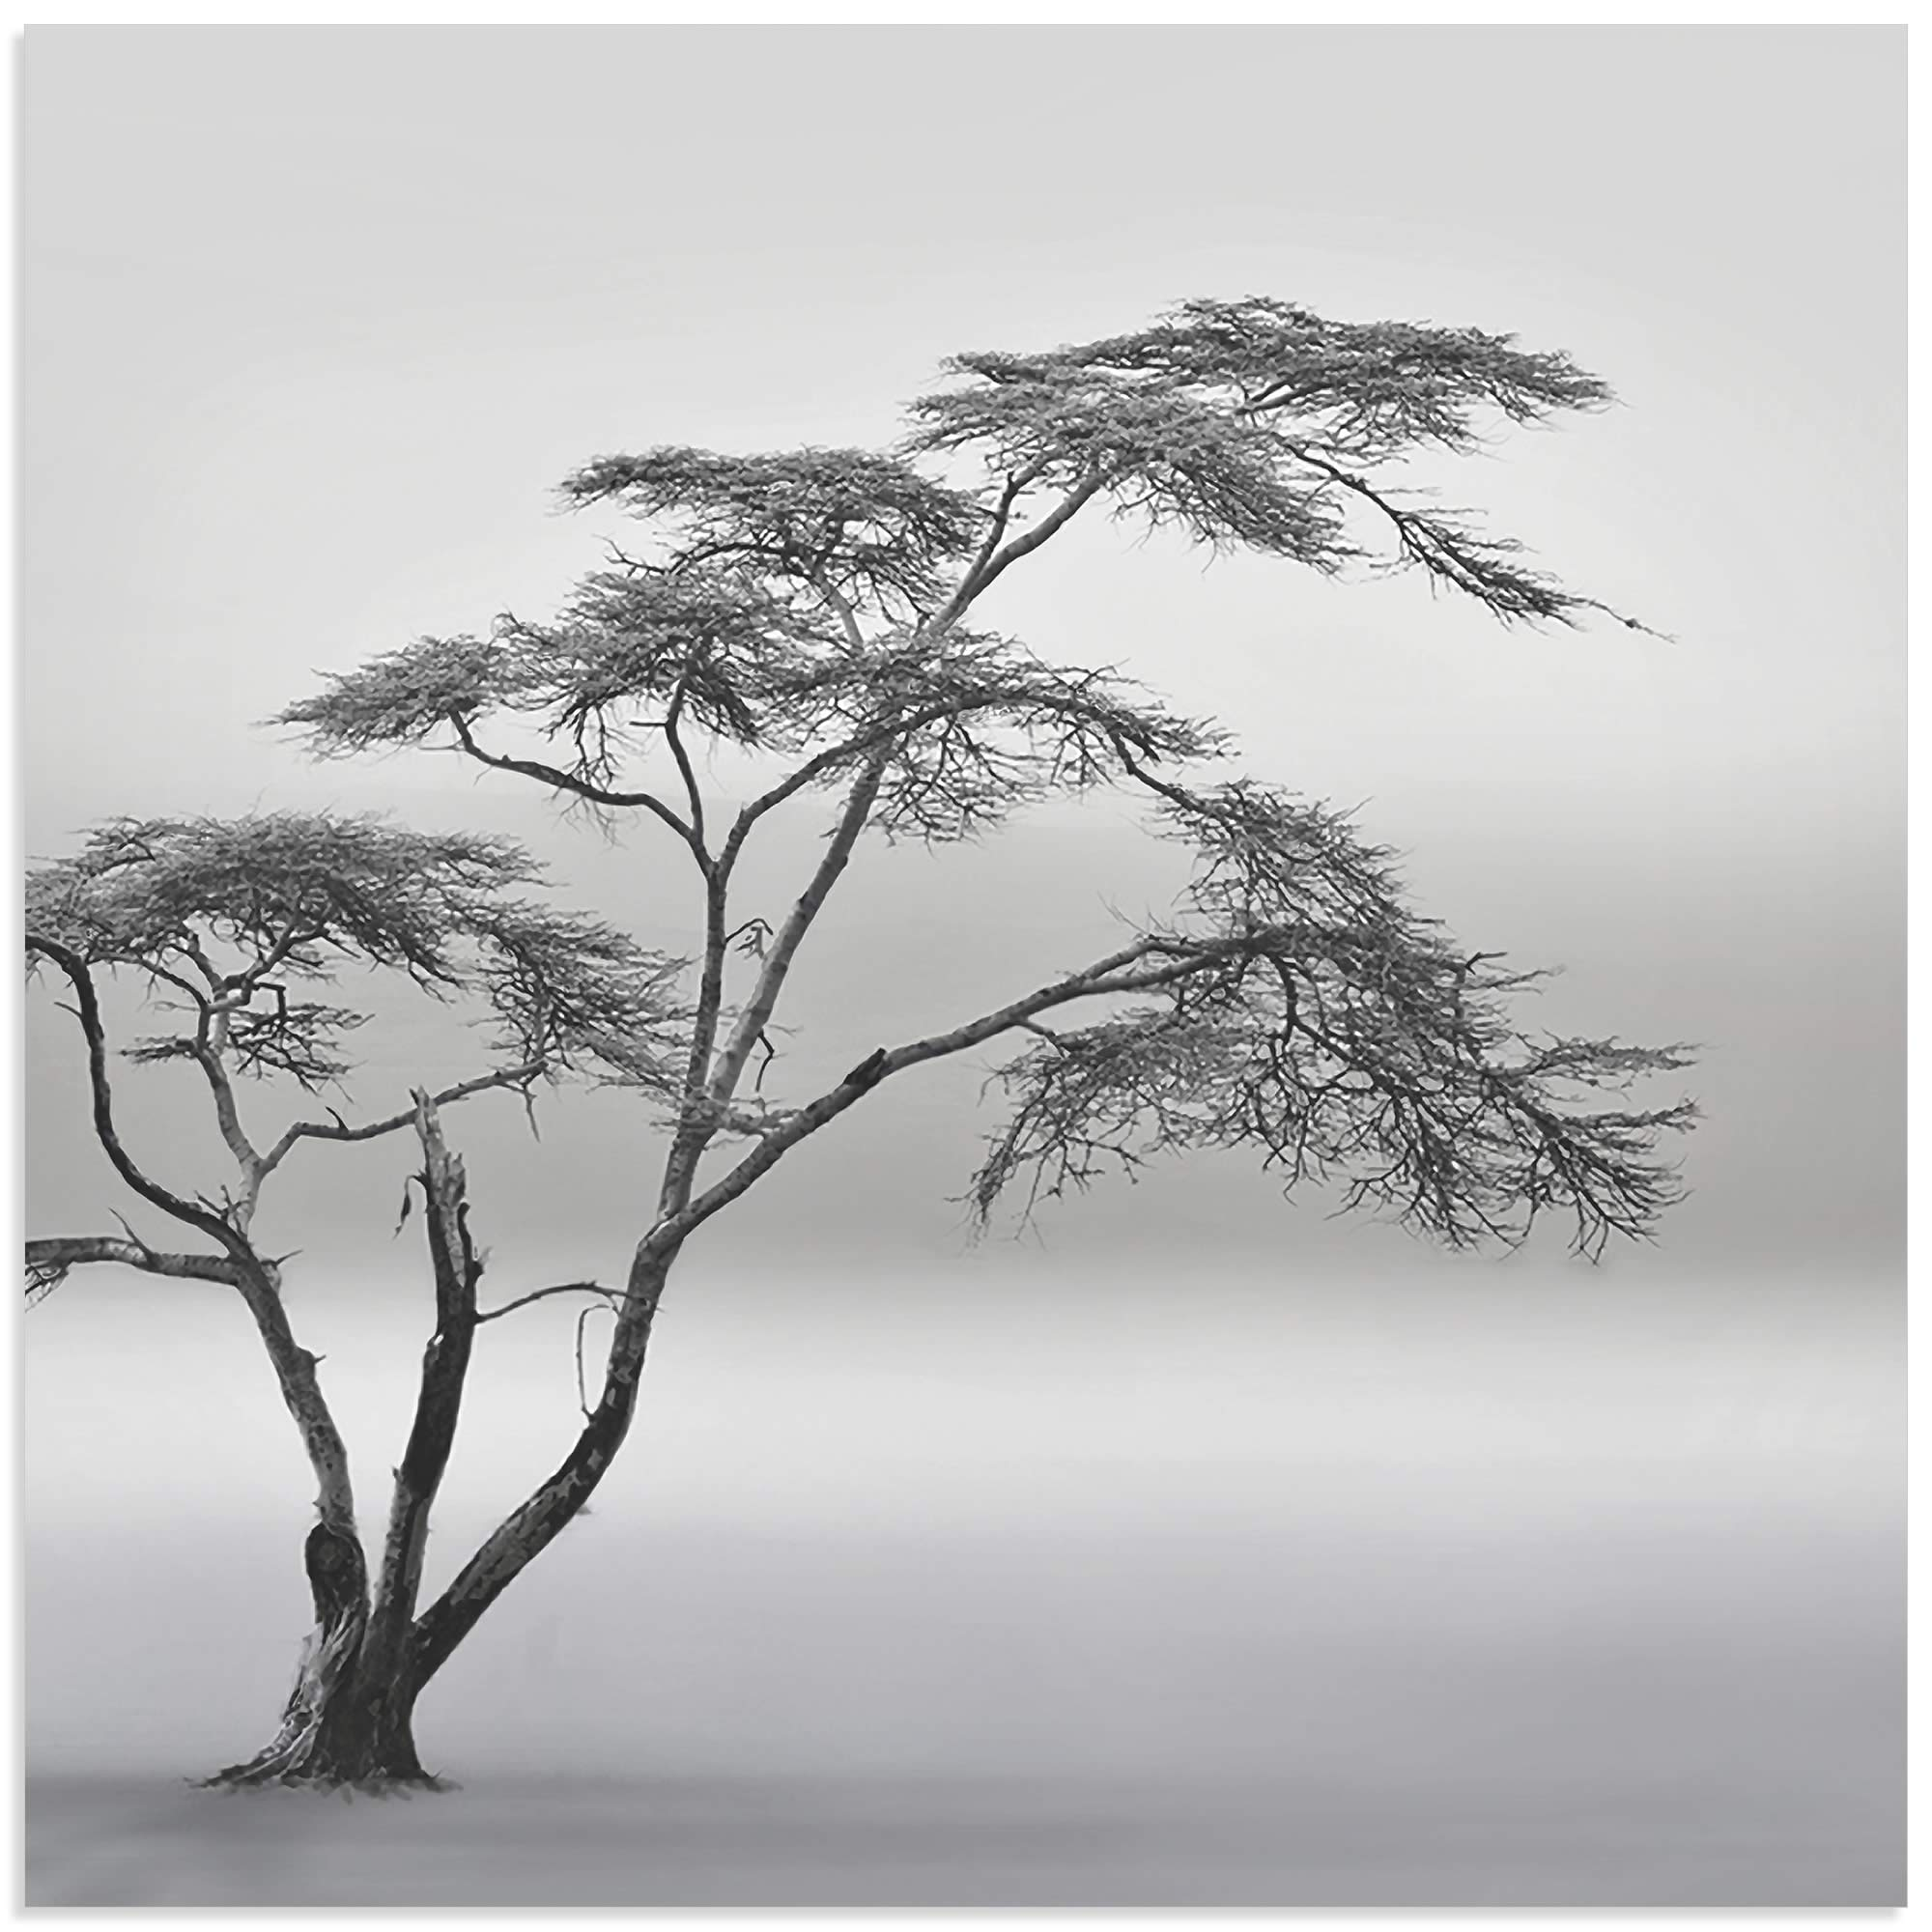 A Very Long Story by Piet Flour - Minimalist Tree Art on Metal or Acrylic